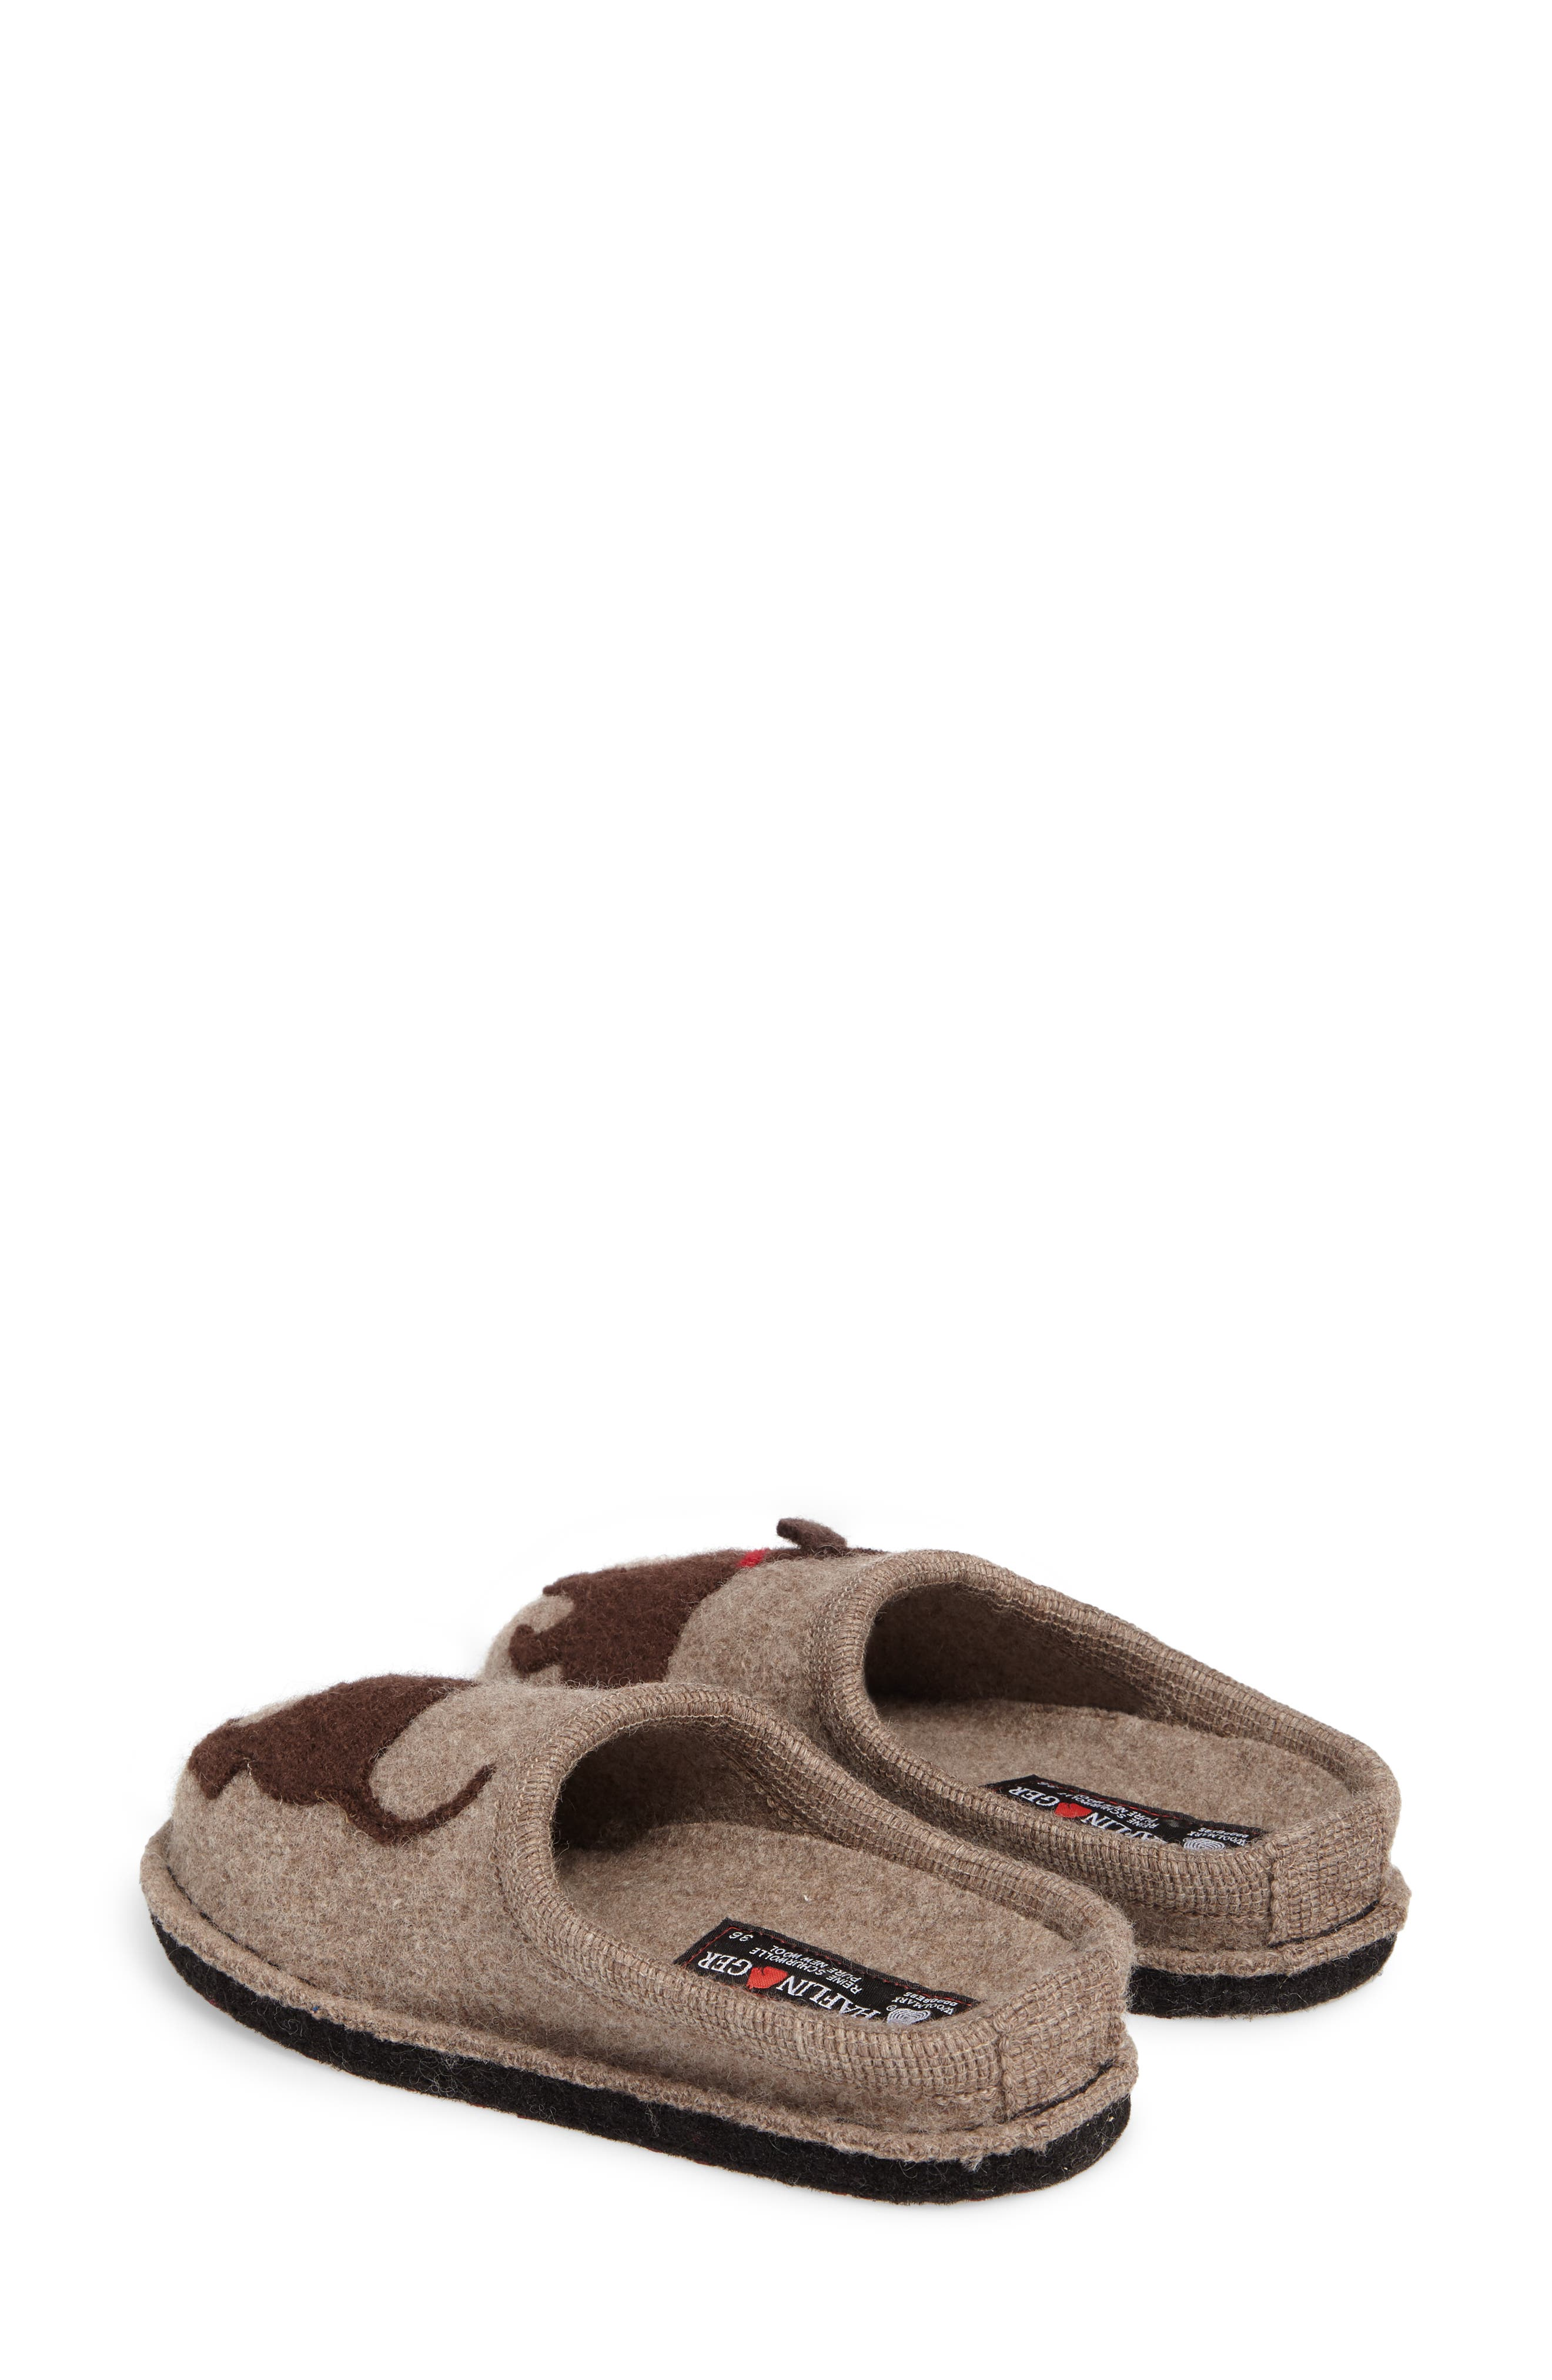 'Doggy' Slipper,                             Alternate thumbnail 4, color,                             EARTH